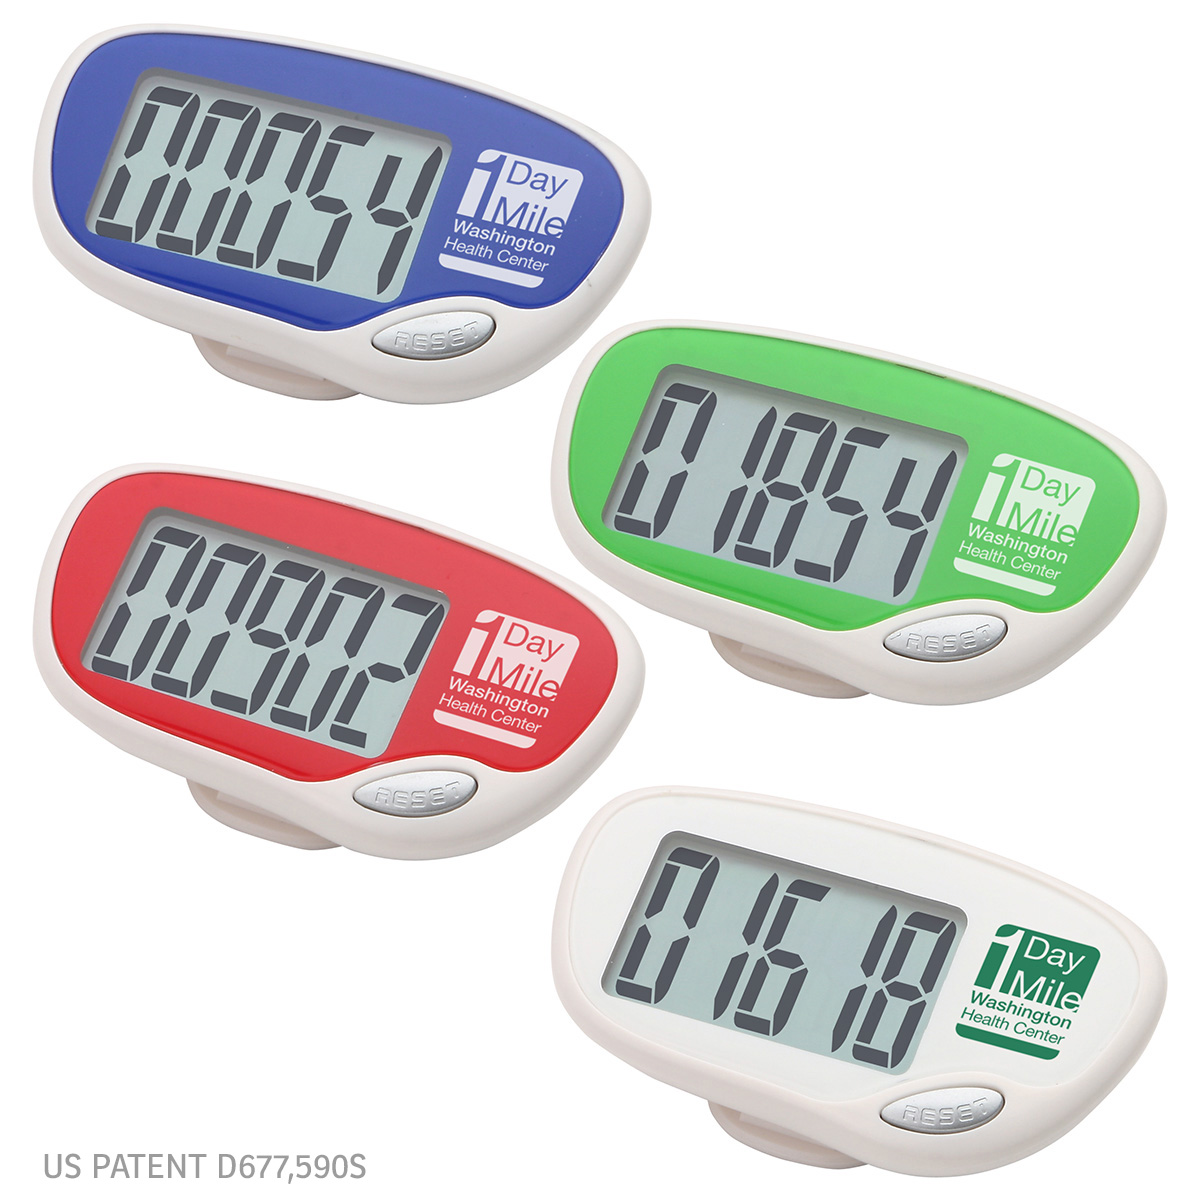 Easy Read Large Screen Pedometer, WHF-ER11 - 1 Colour Imprint